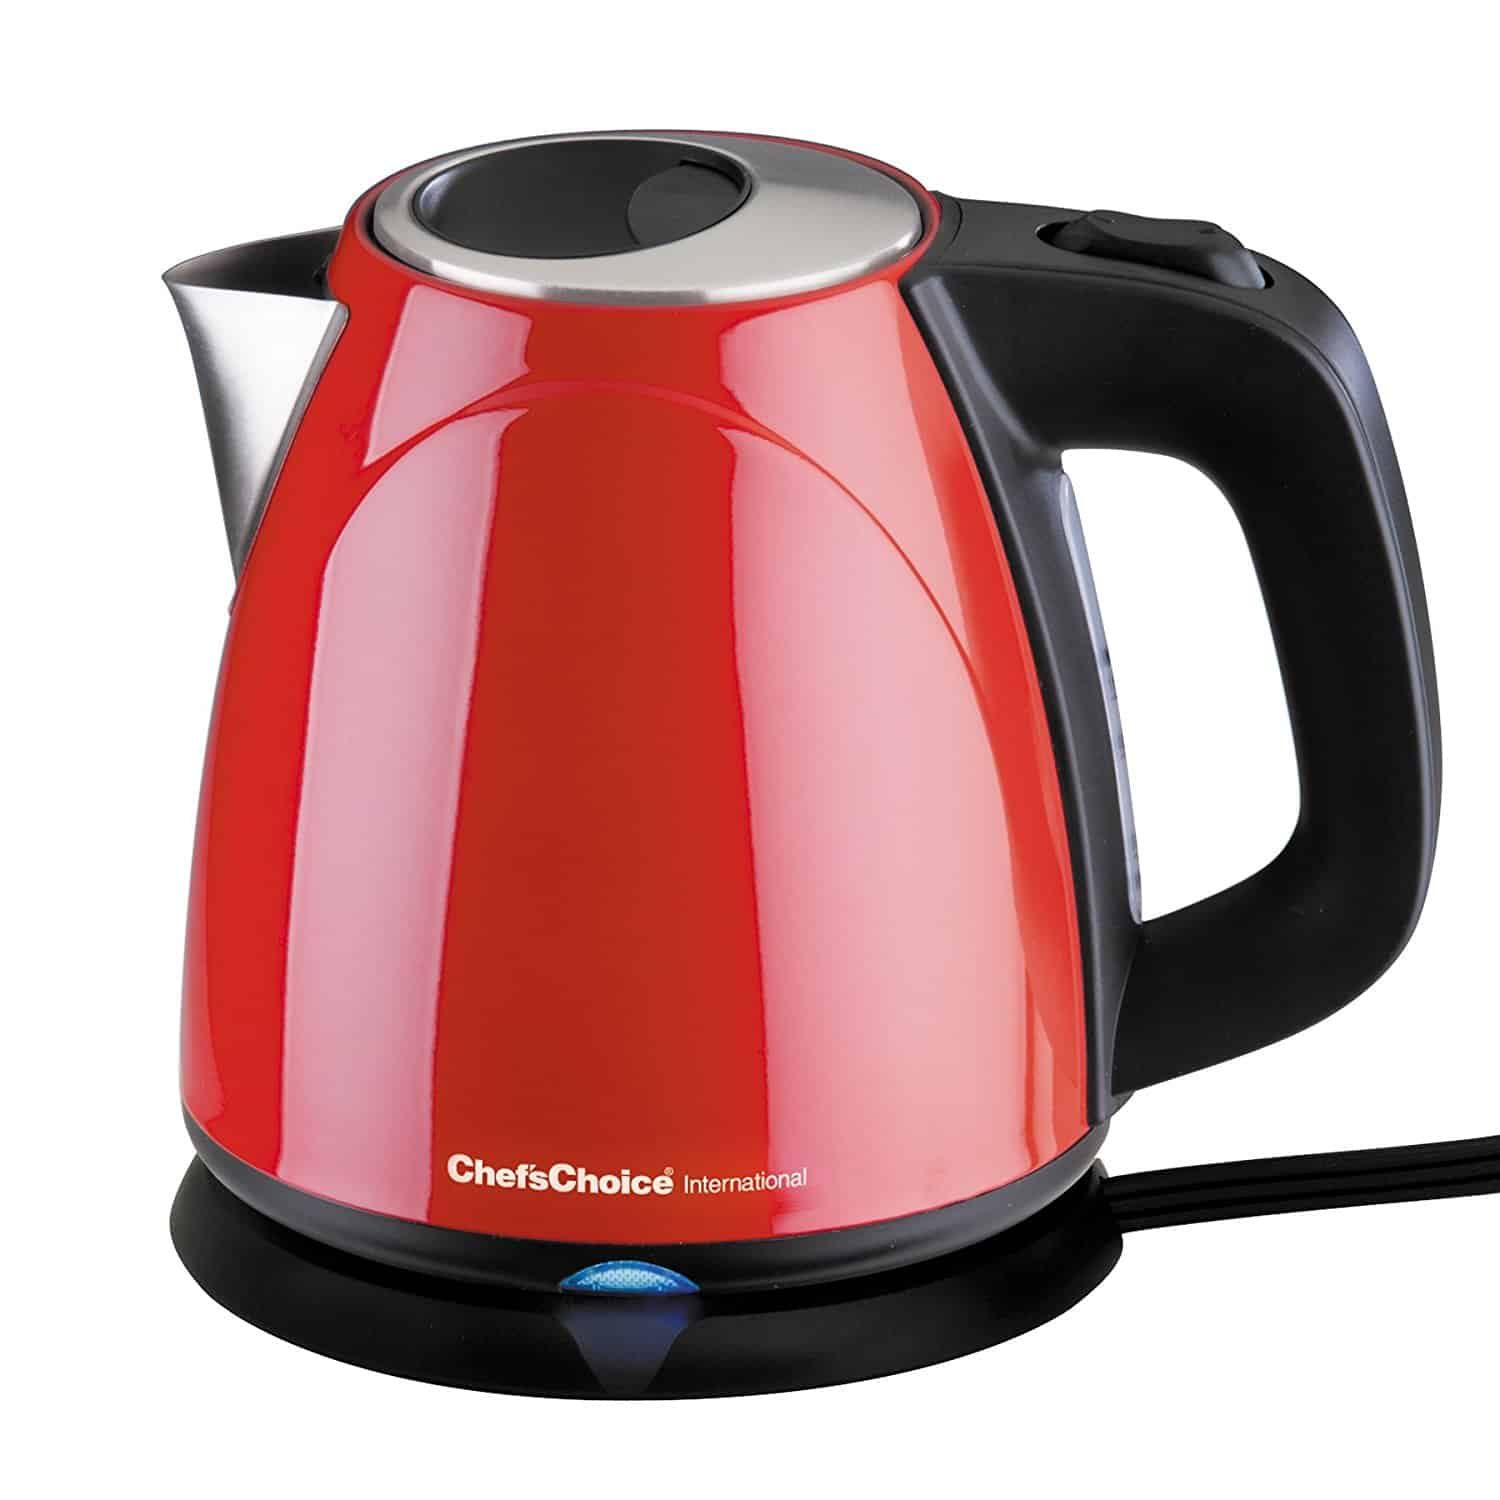 Chef's Choice 6730002 M673 International Cordless Compact Electric Kettle